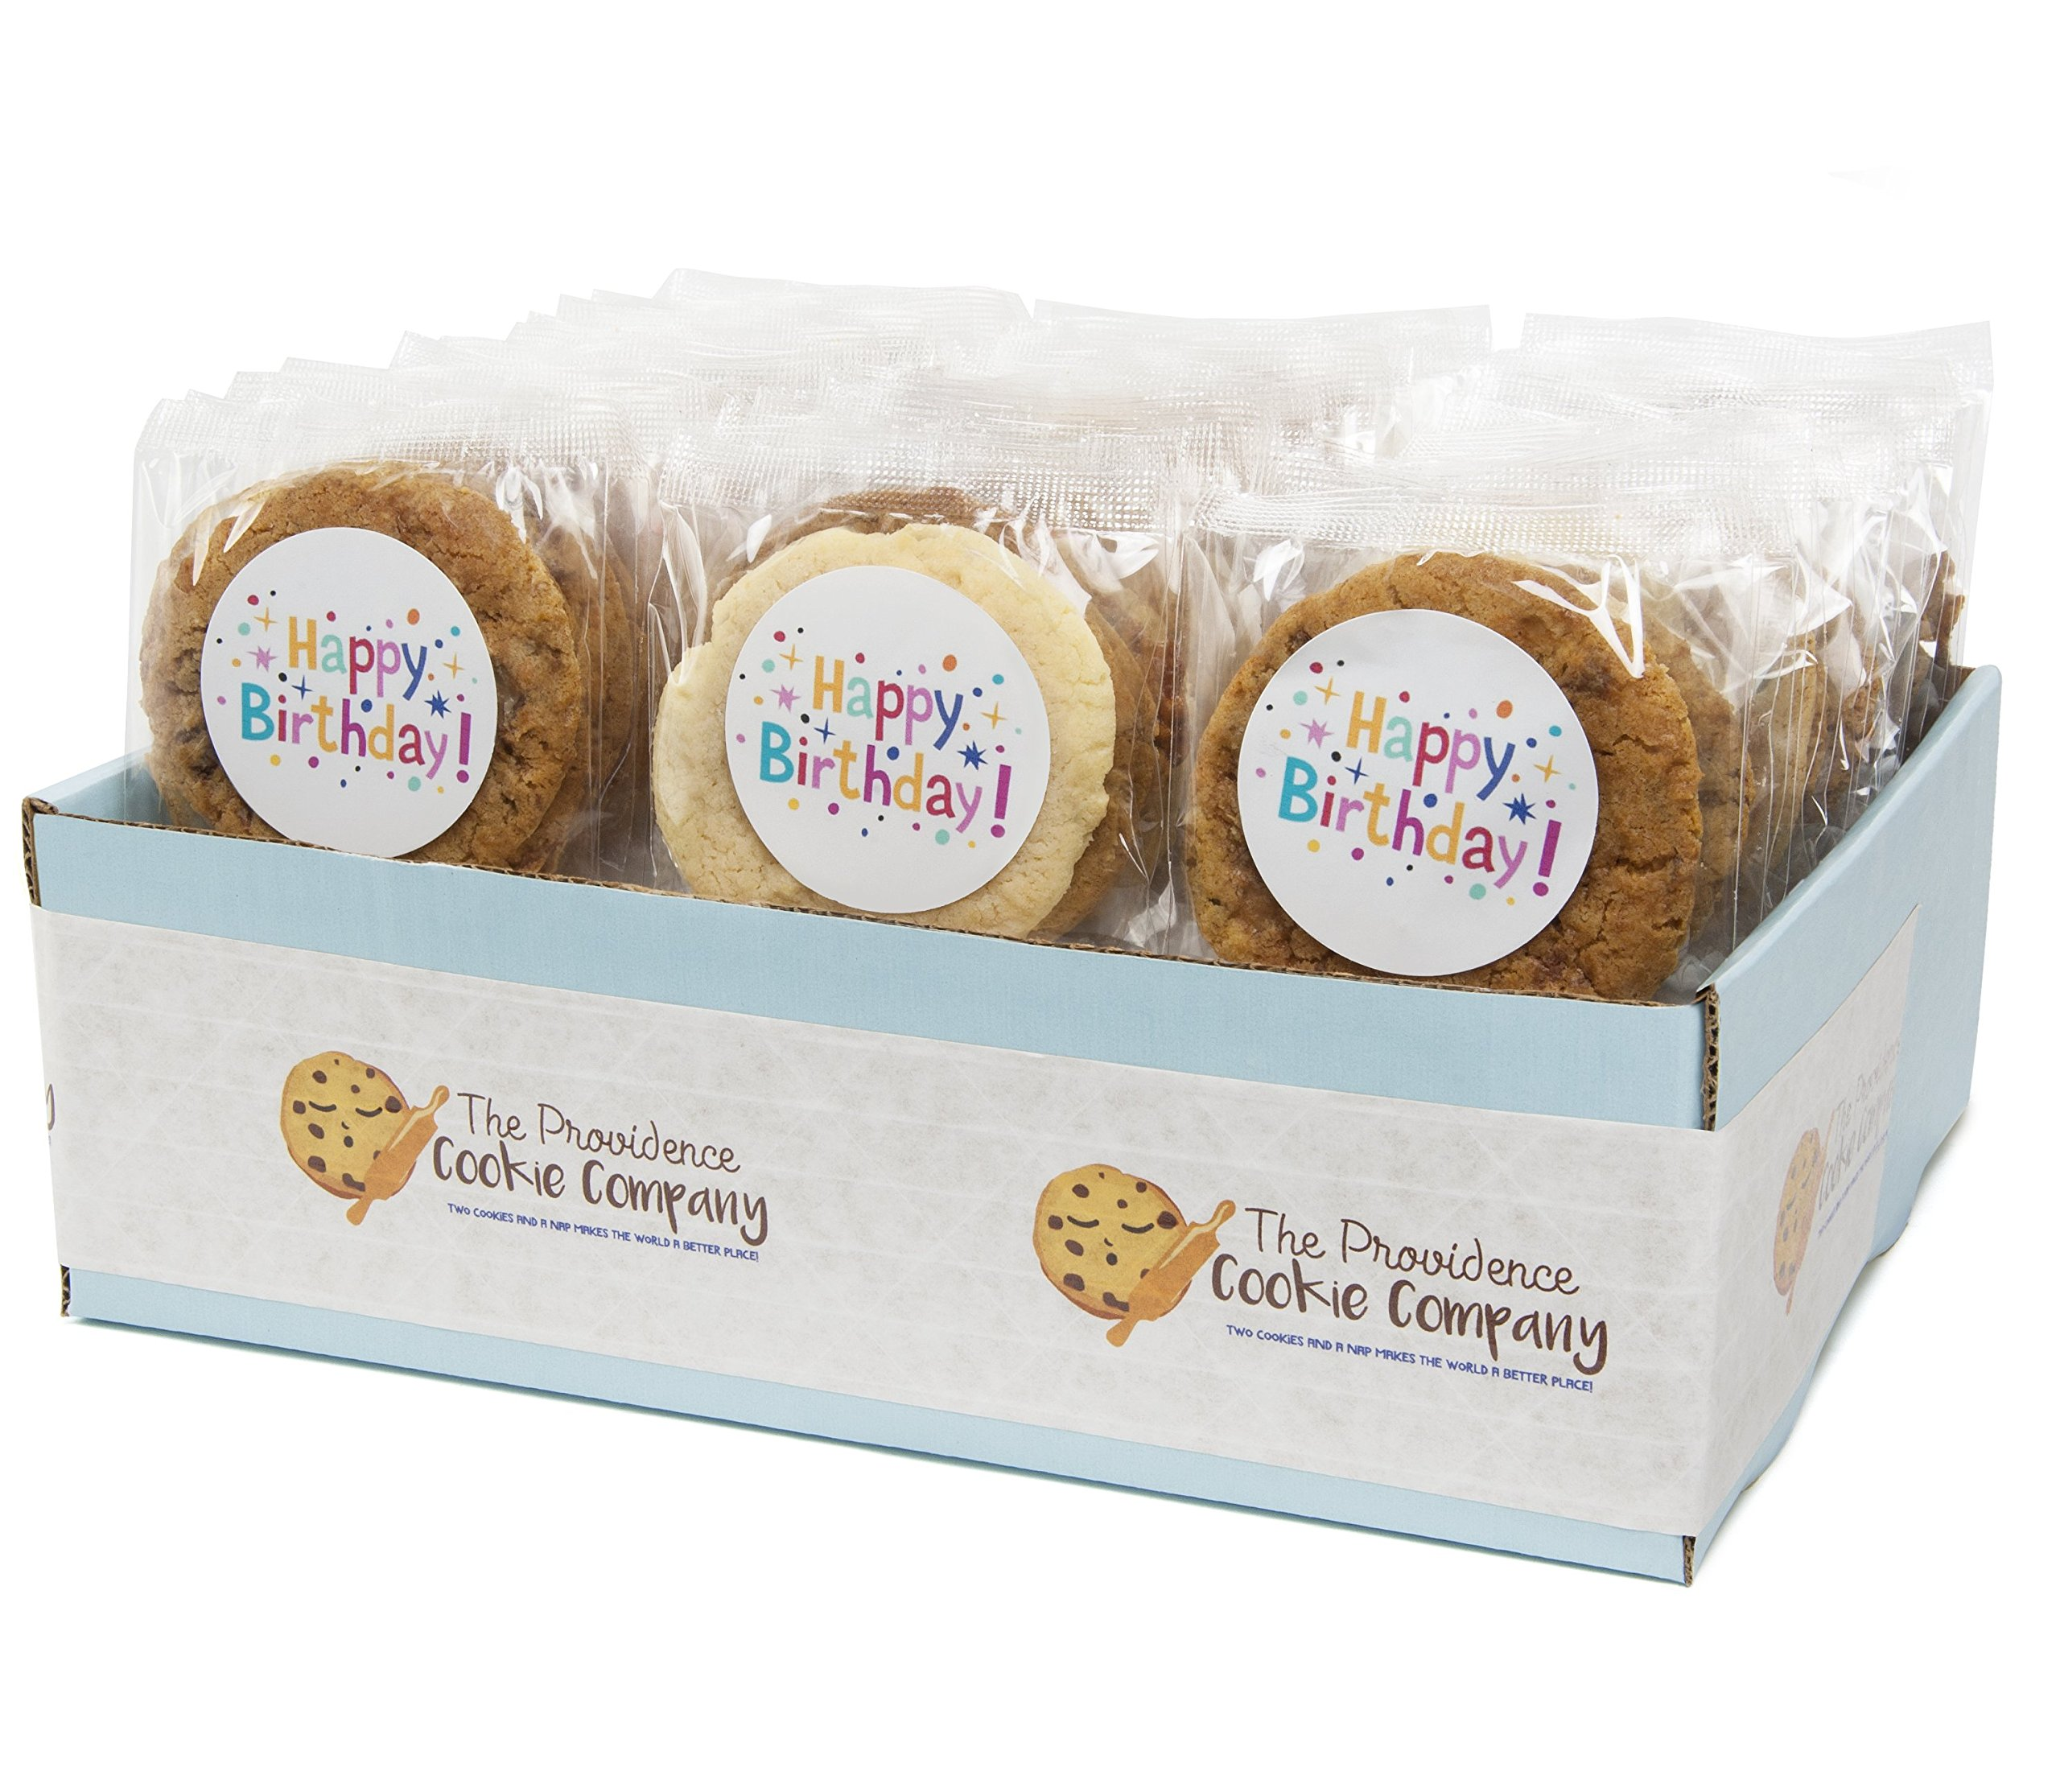 The Providence Cookie Company HAPPY BIRTHDAY GOURMET COOKIE GIFT choose 1, 2, 3 or 4 Dozen (3 Dozen) by The Providence Cookie Company llc (Image #1)